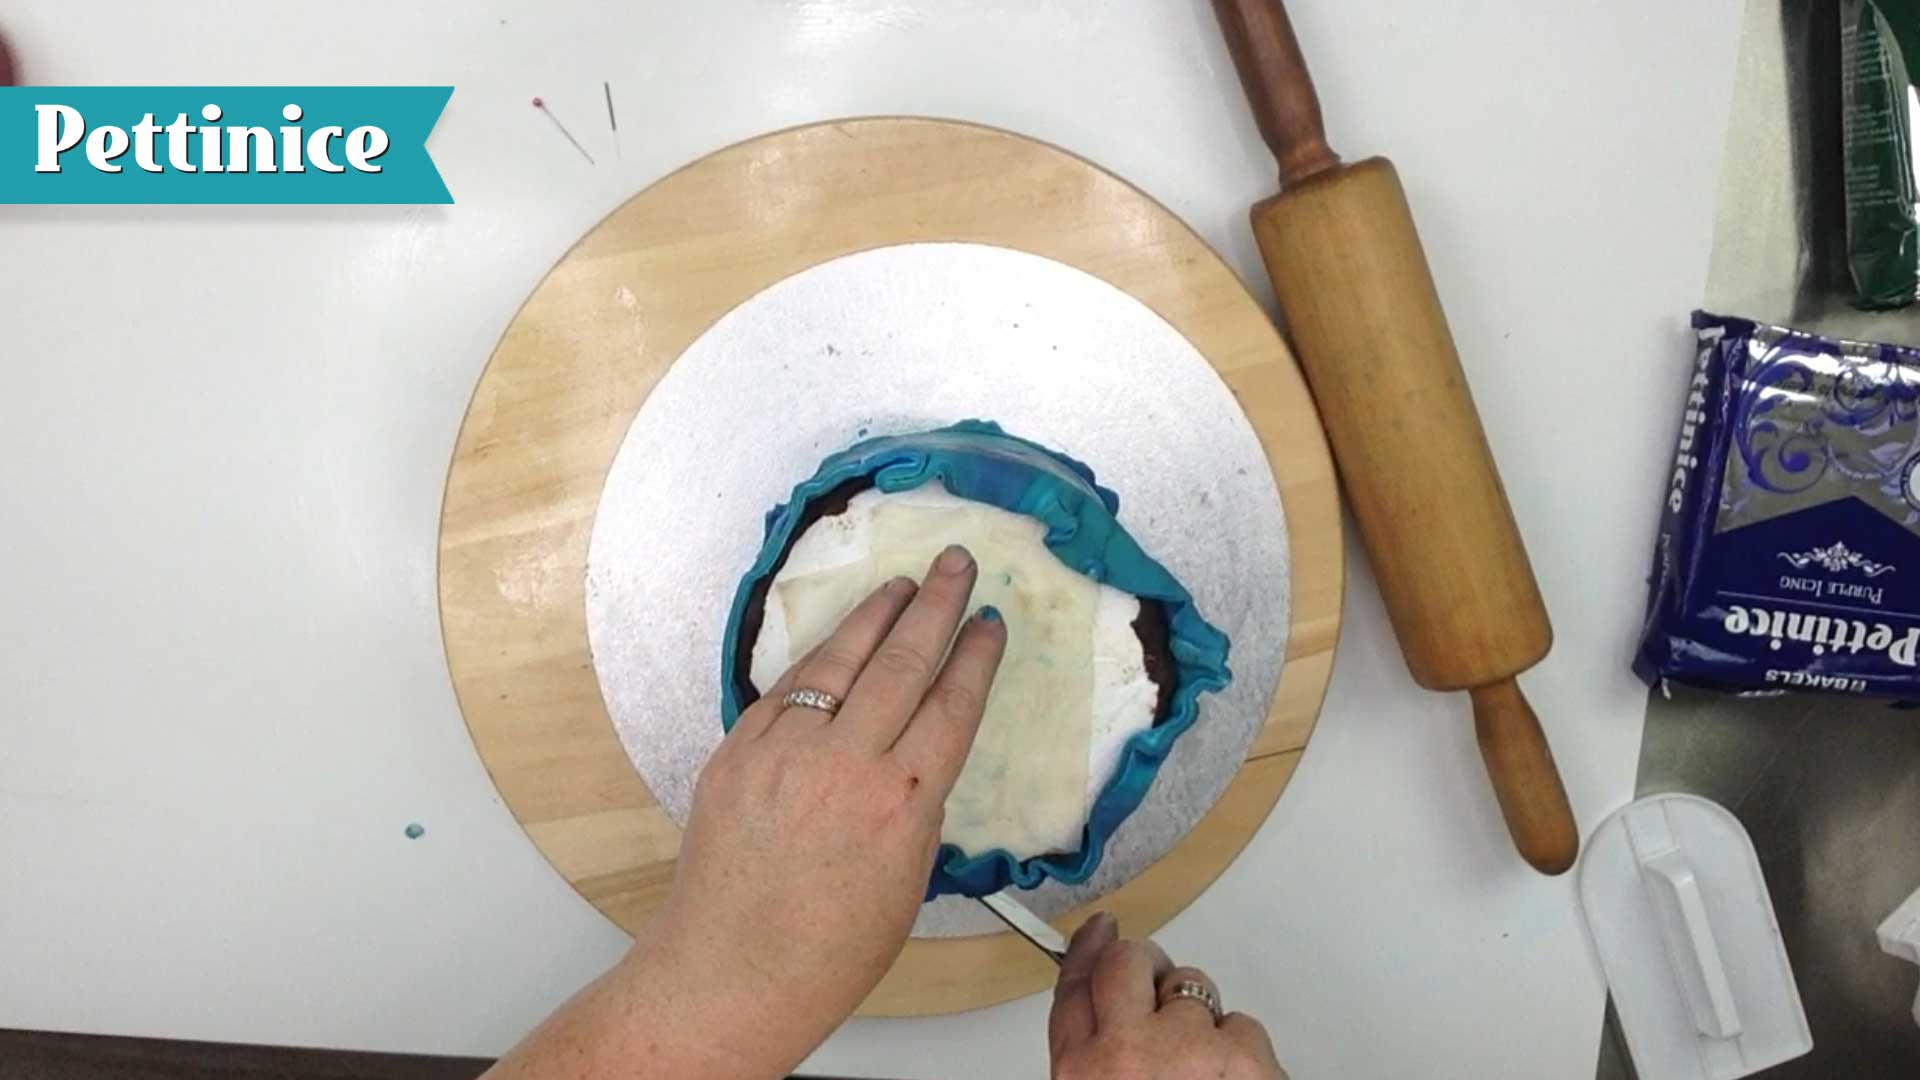 Keeping knife straight, trim off excess fondant.